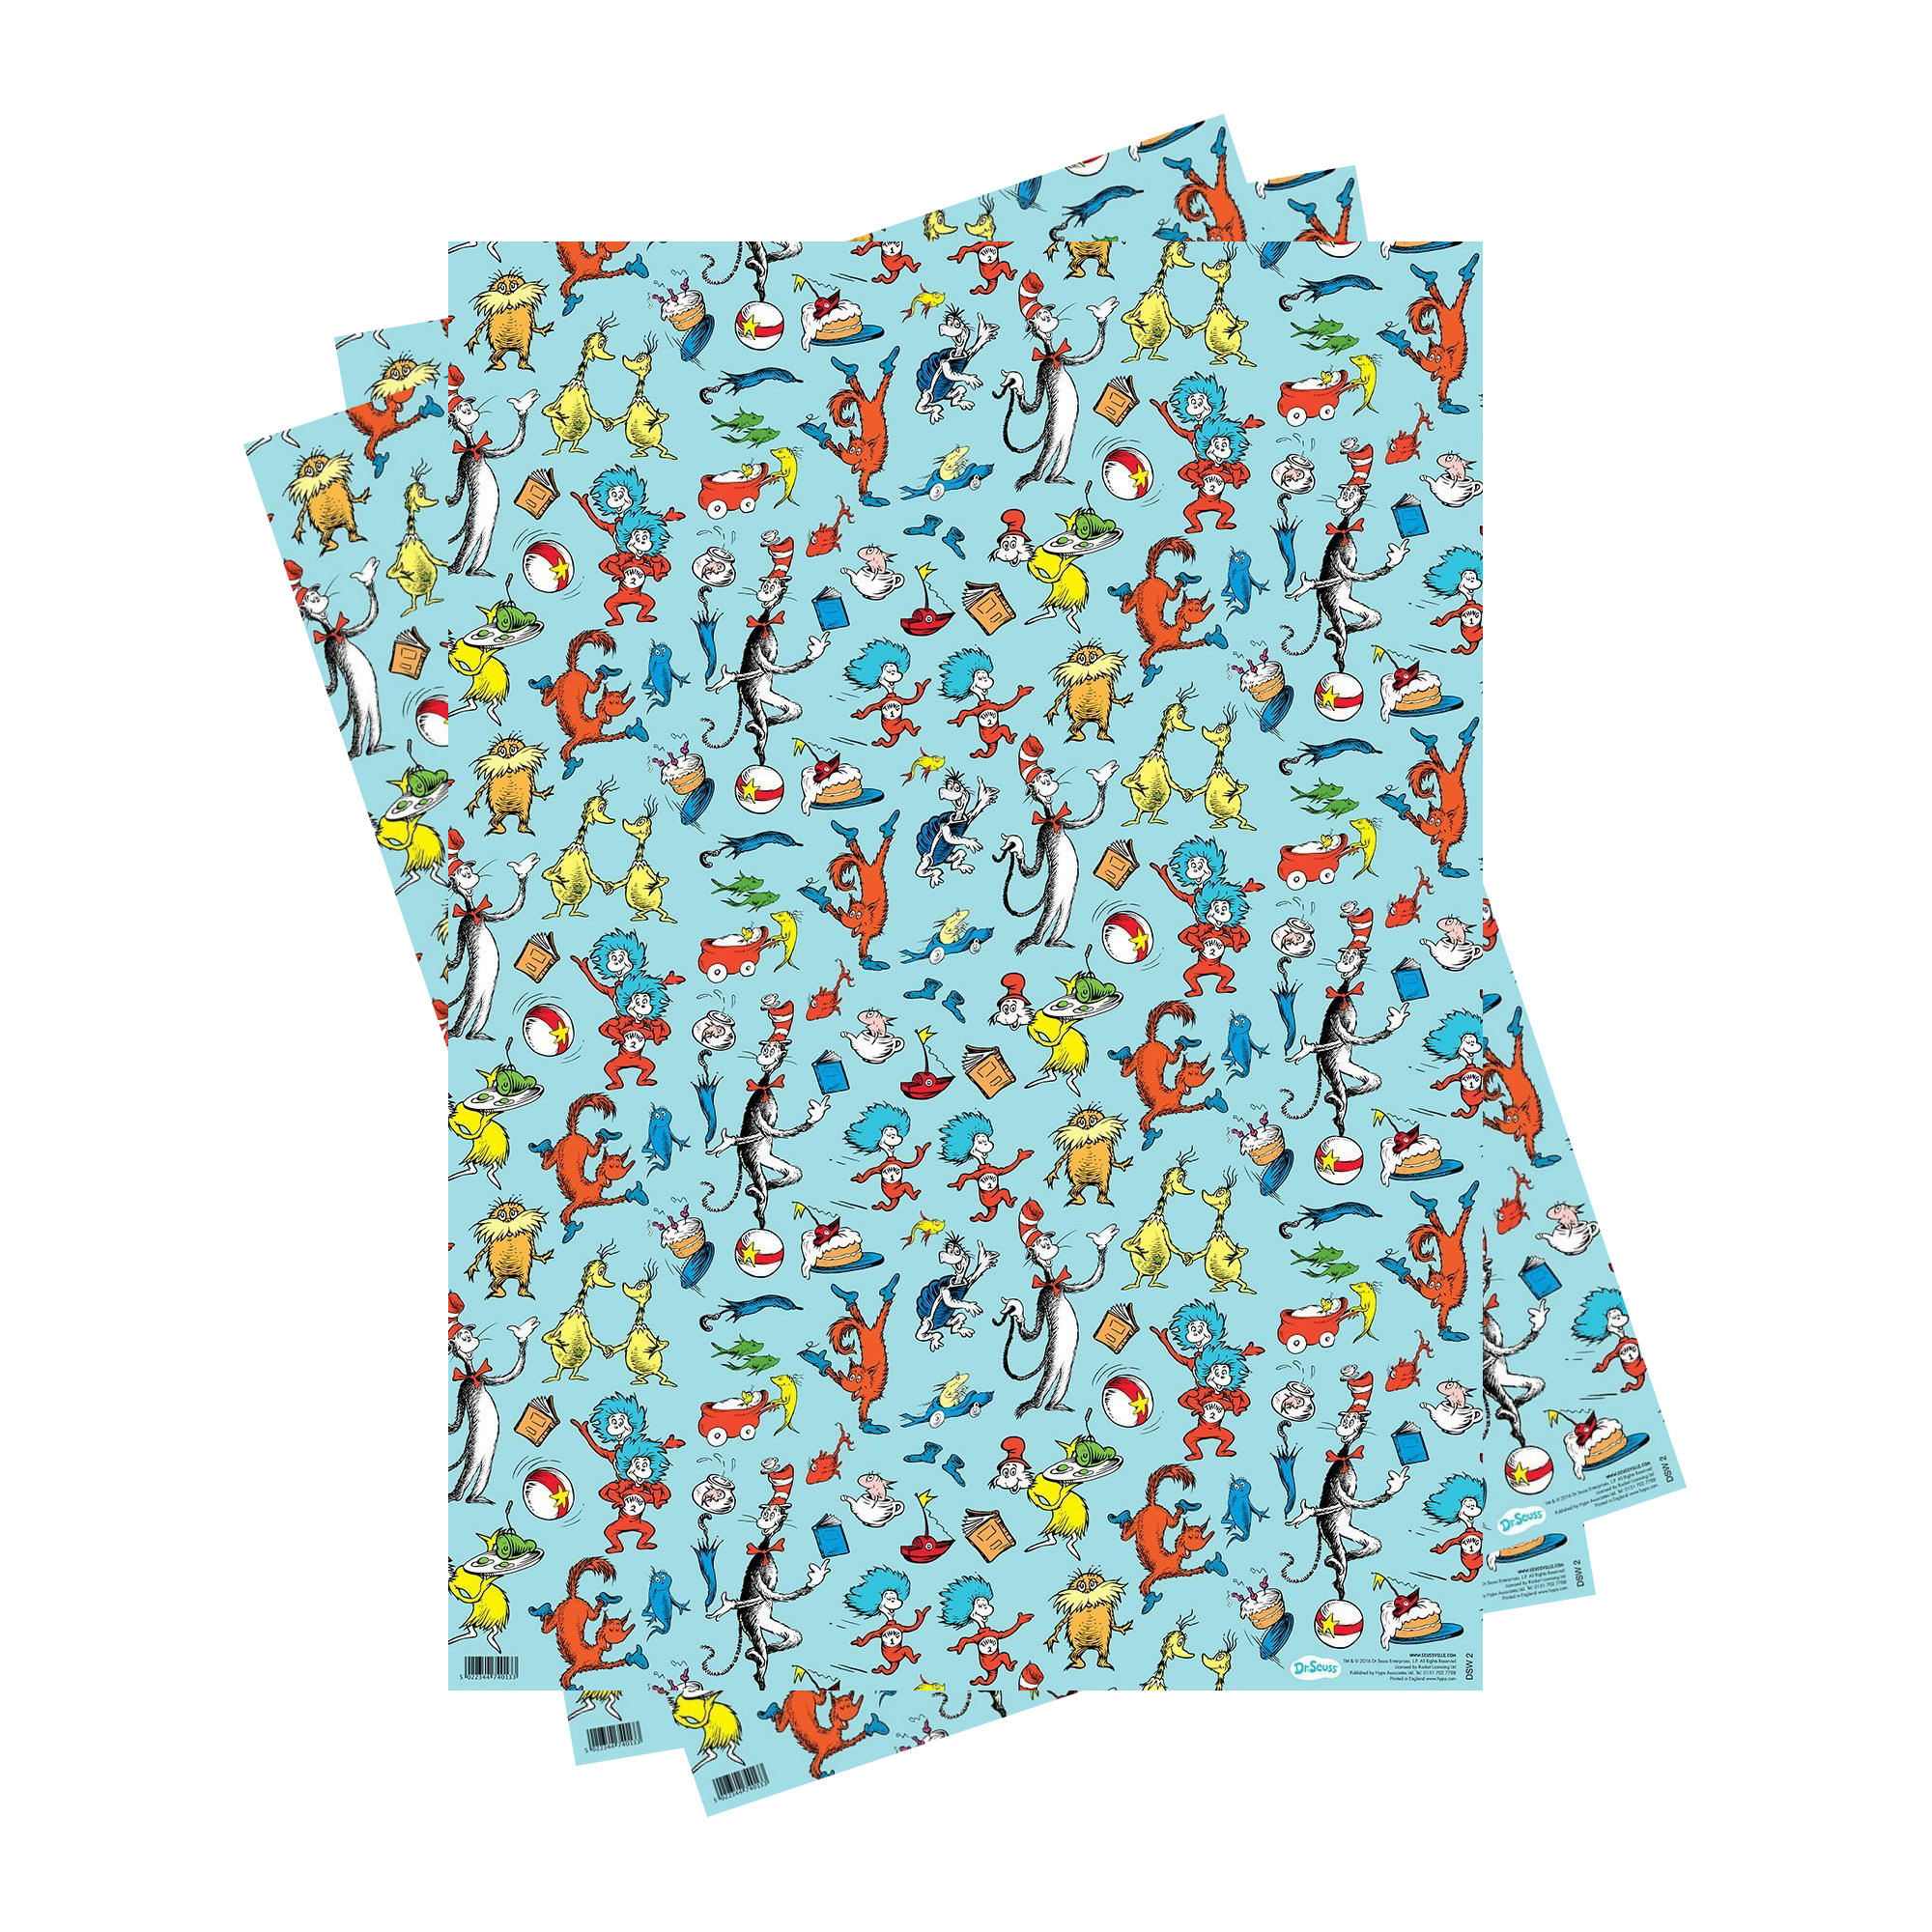 3 SHEETS DR SEUSS CHARACTERS GIFT WRAP WRAPPING PAPER CAT IN THE HAT LORAX SAM